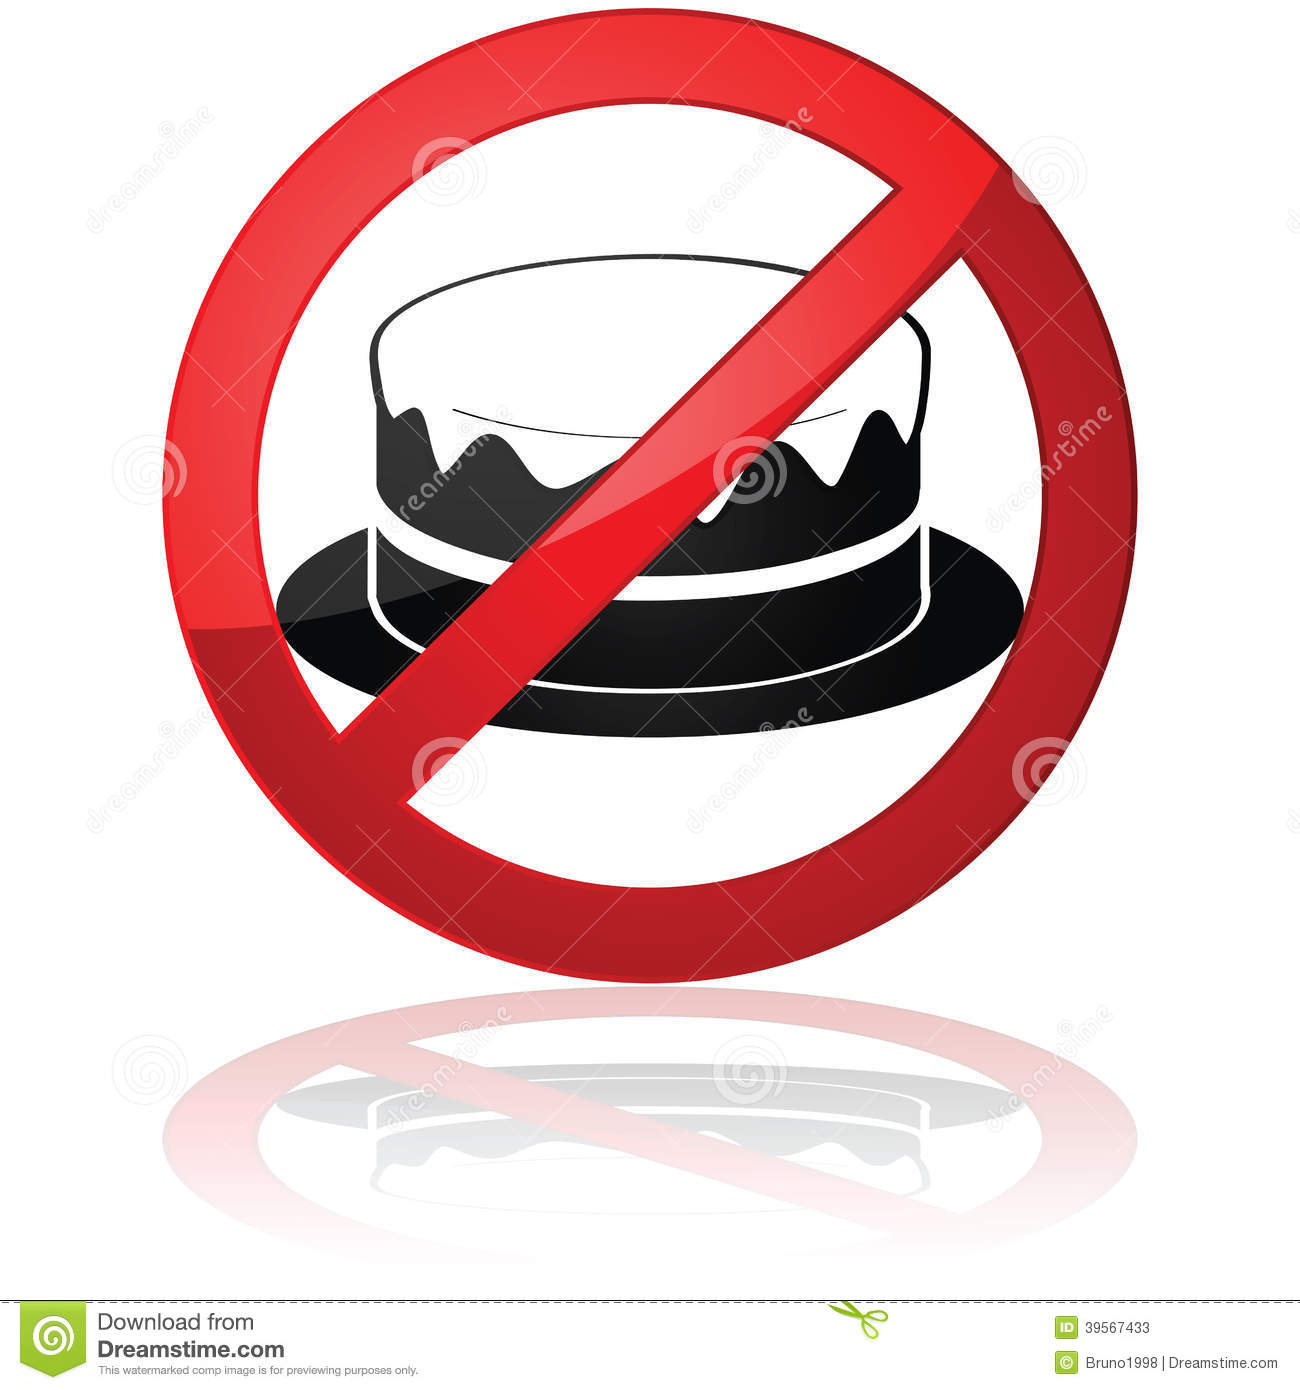 Concept illustration showing a cake inside a forbidden sign.